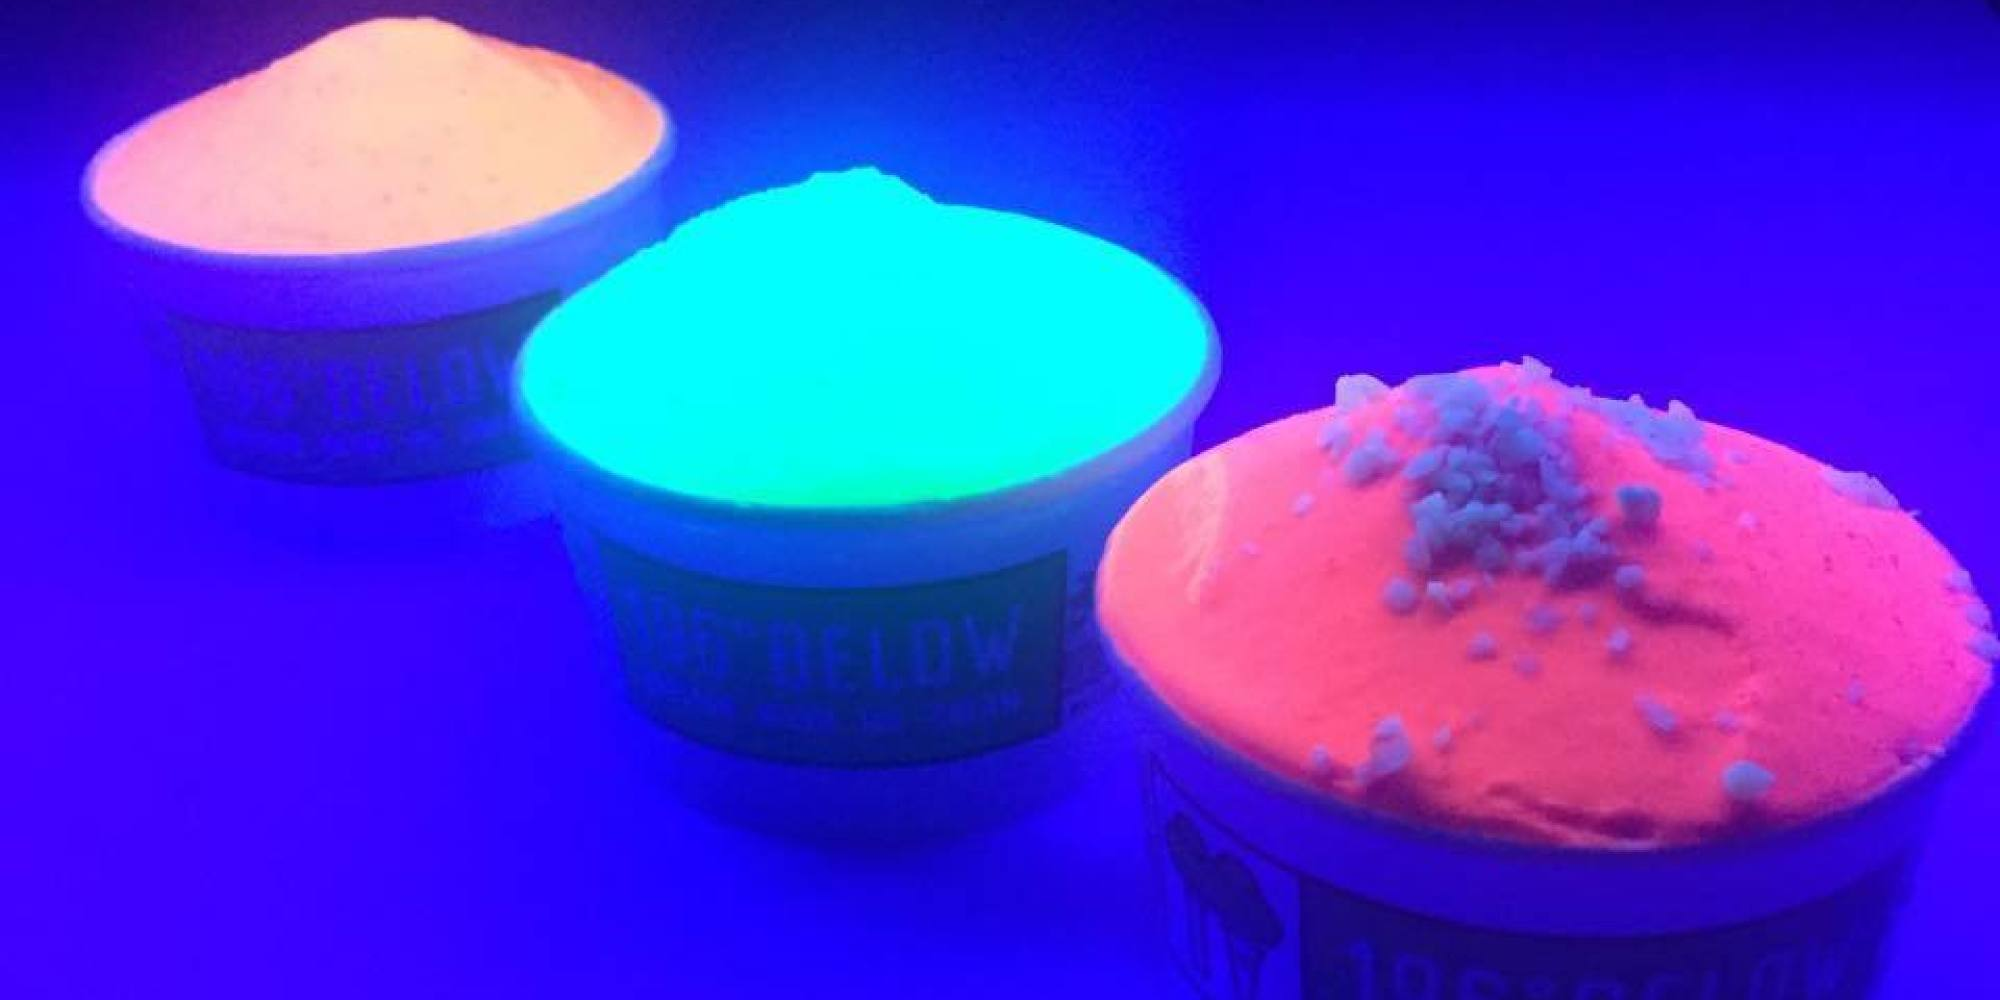 This Glow In The Dark Ice Cream Was Inspired By A Rave HuffPost